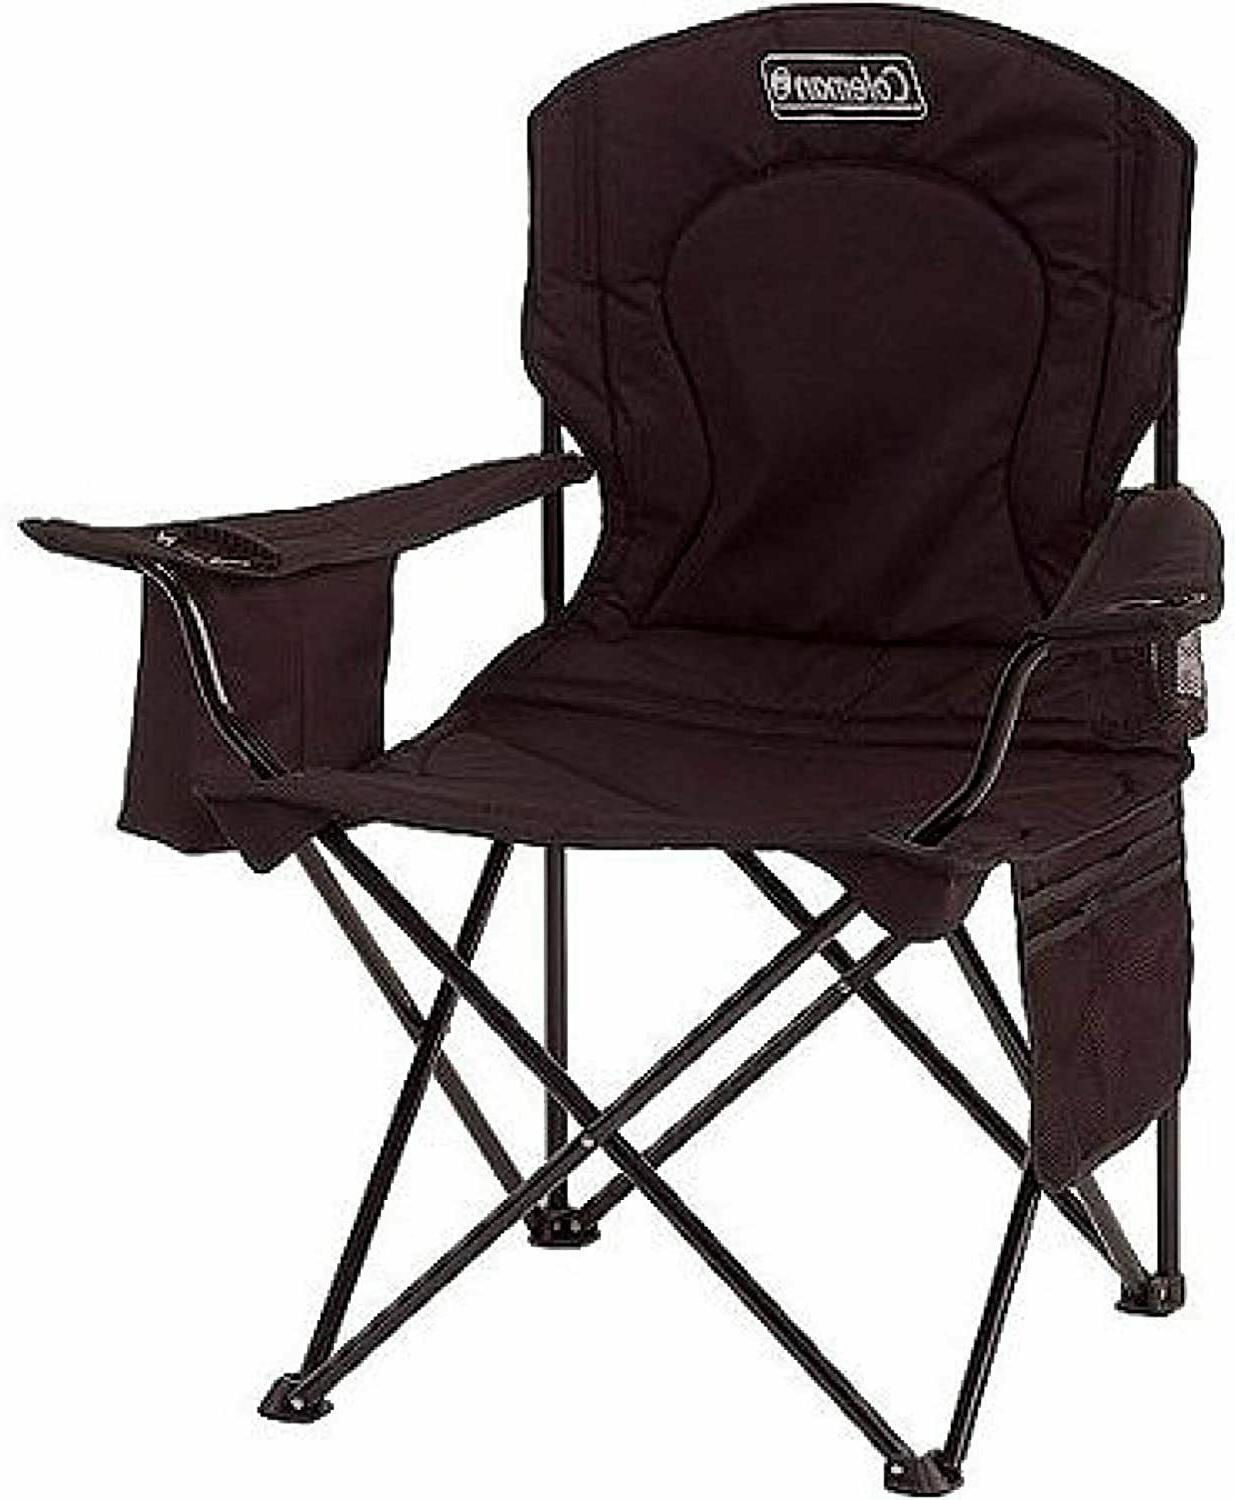 Portable Chair Oversized Mesh Chair Heavy